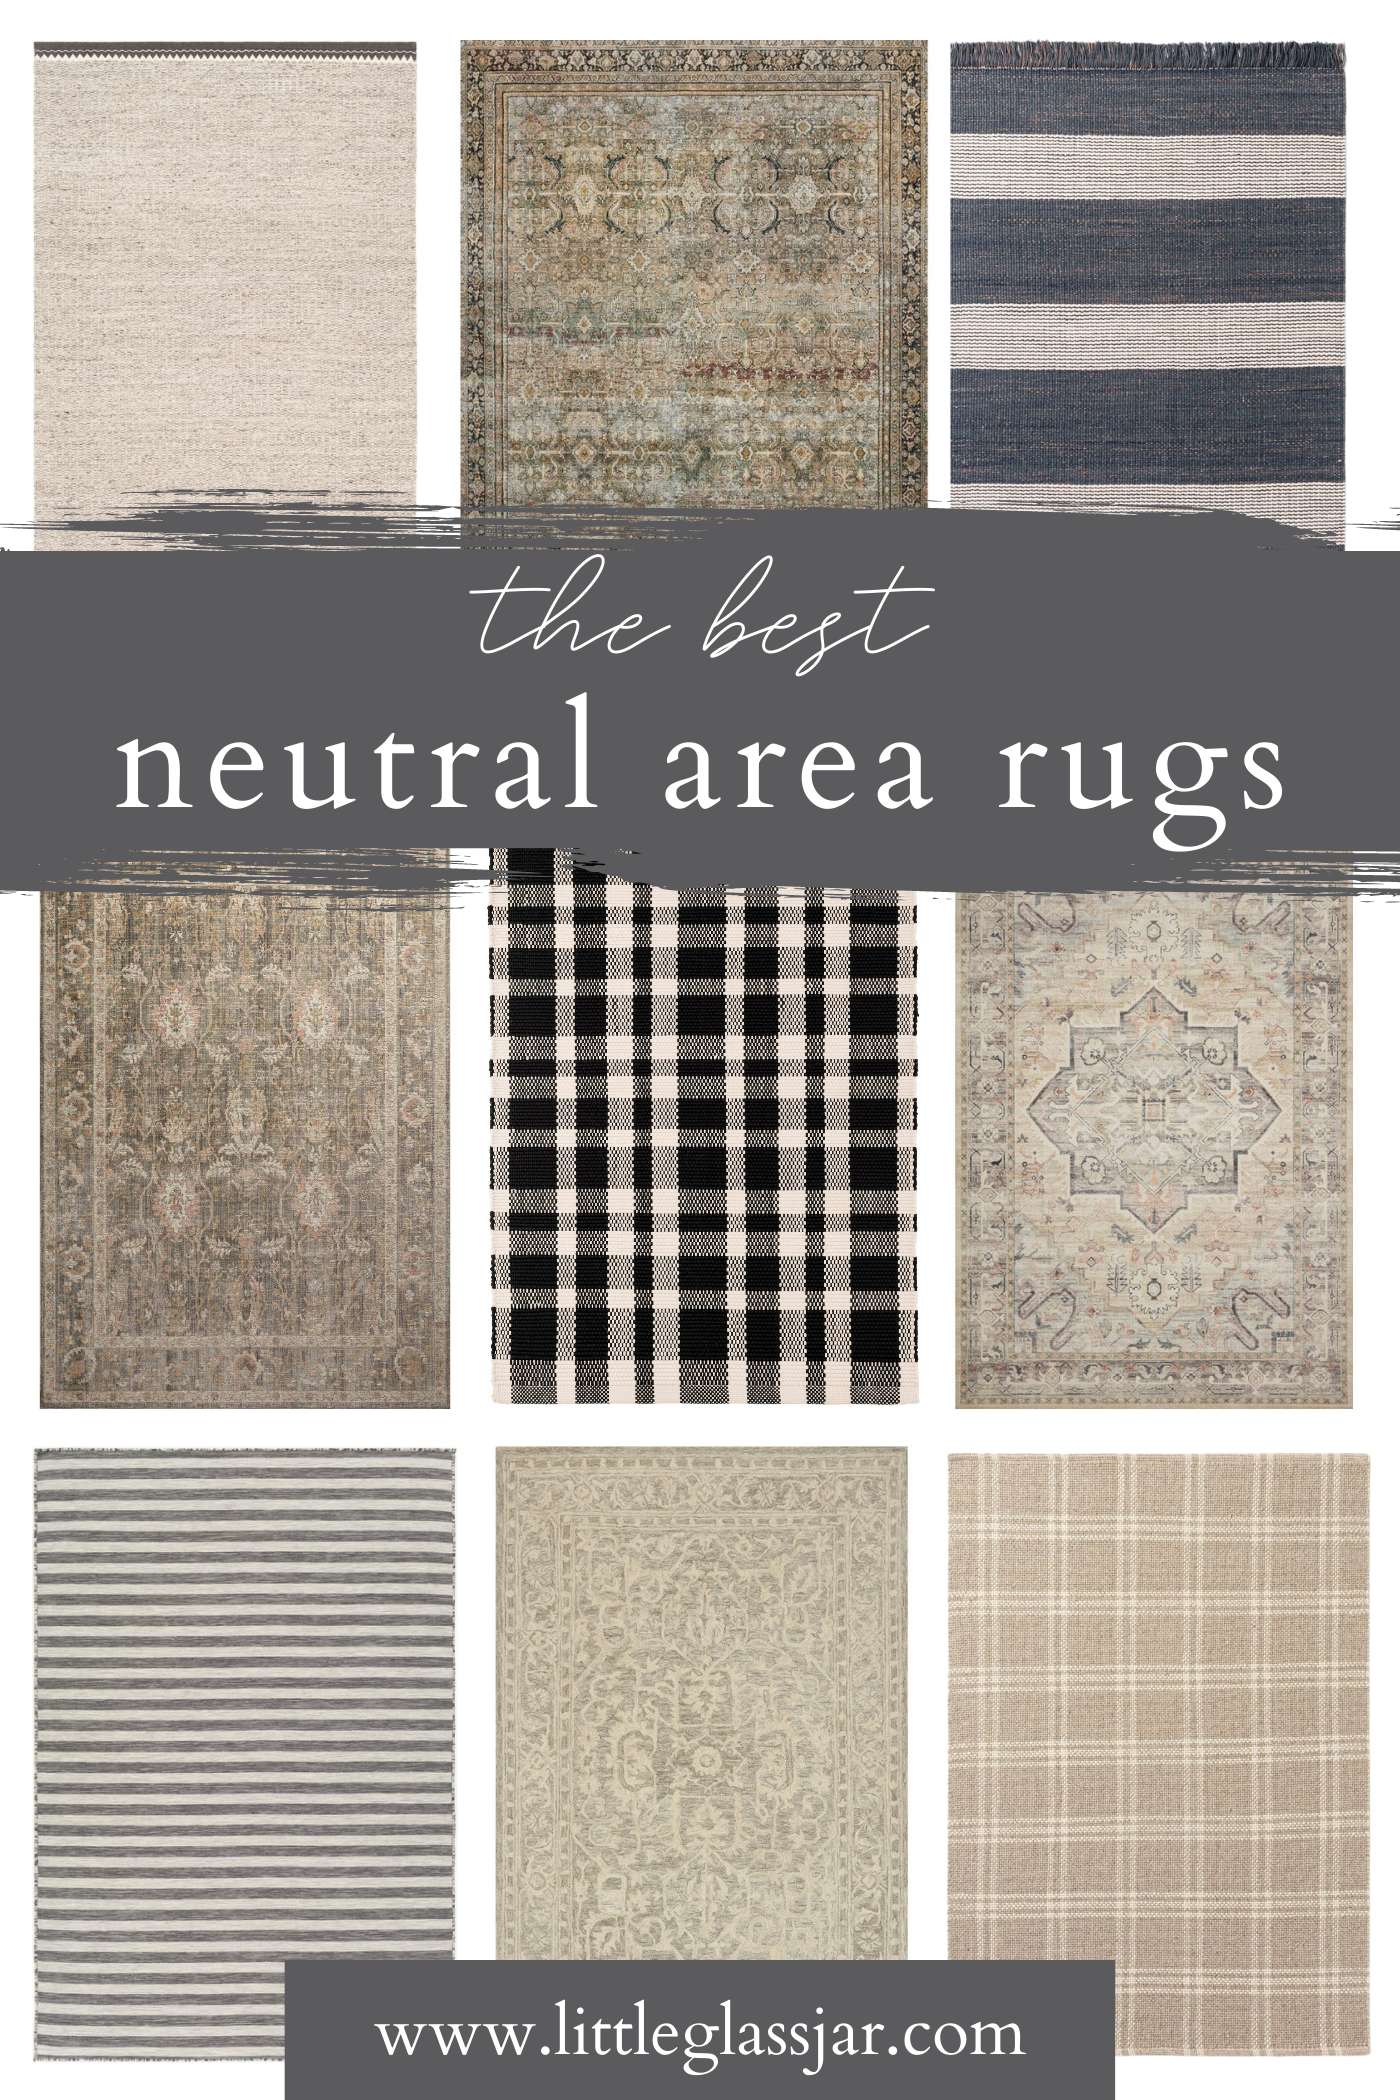 A round up of beautiful neutral area rugs.